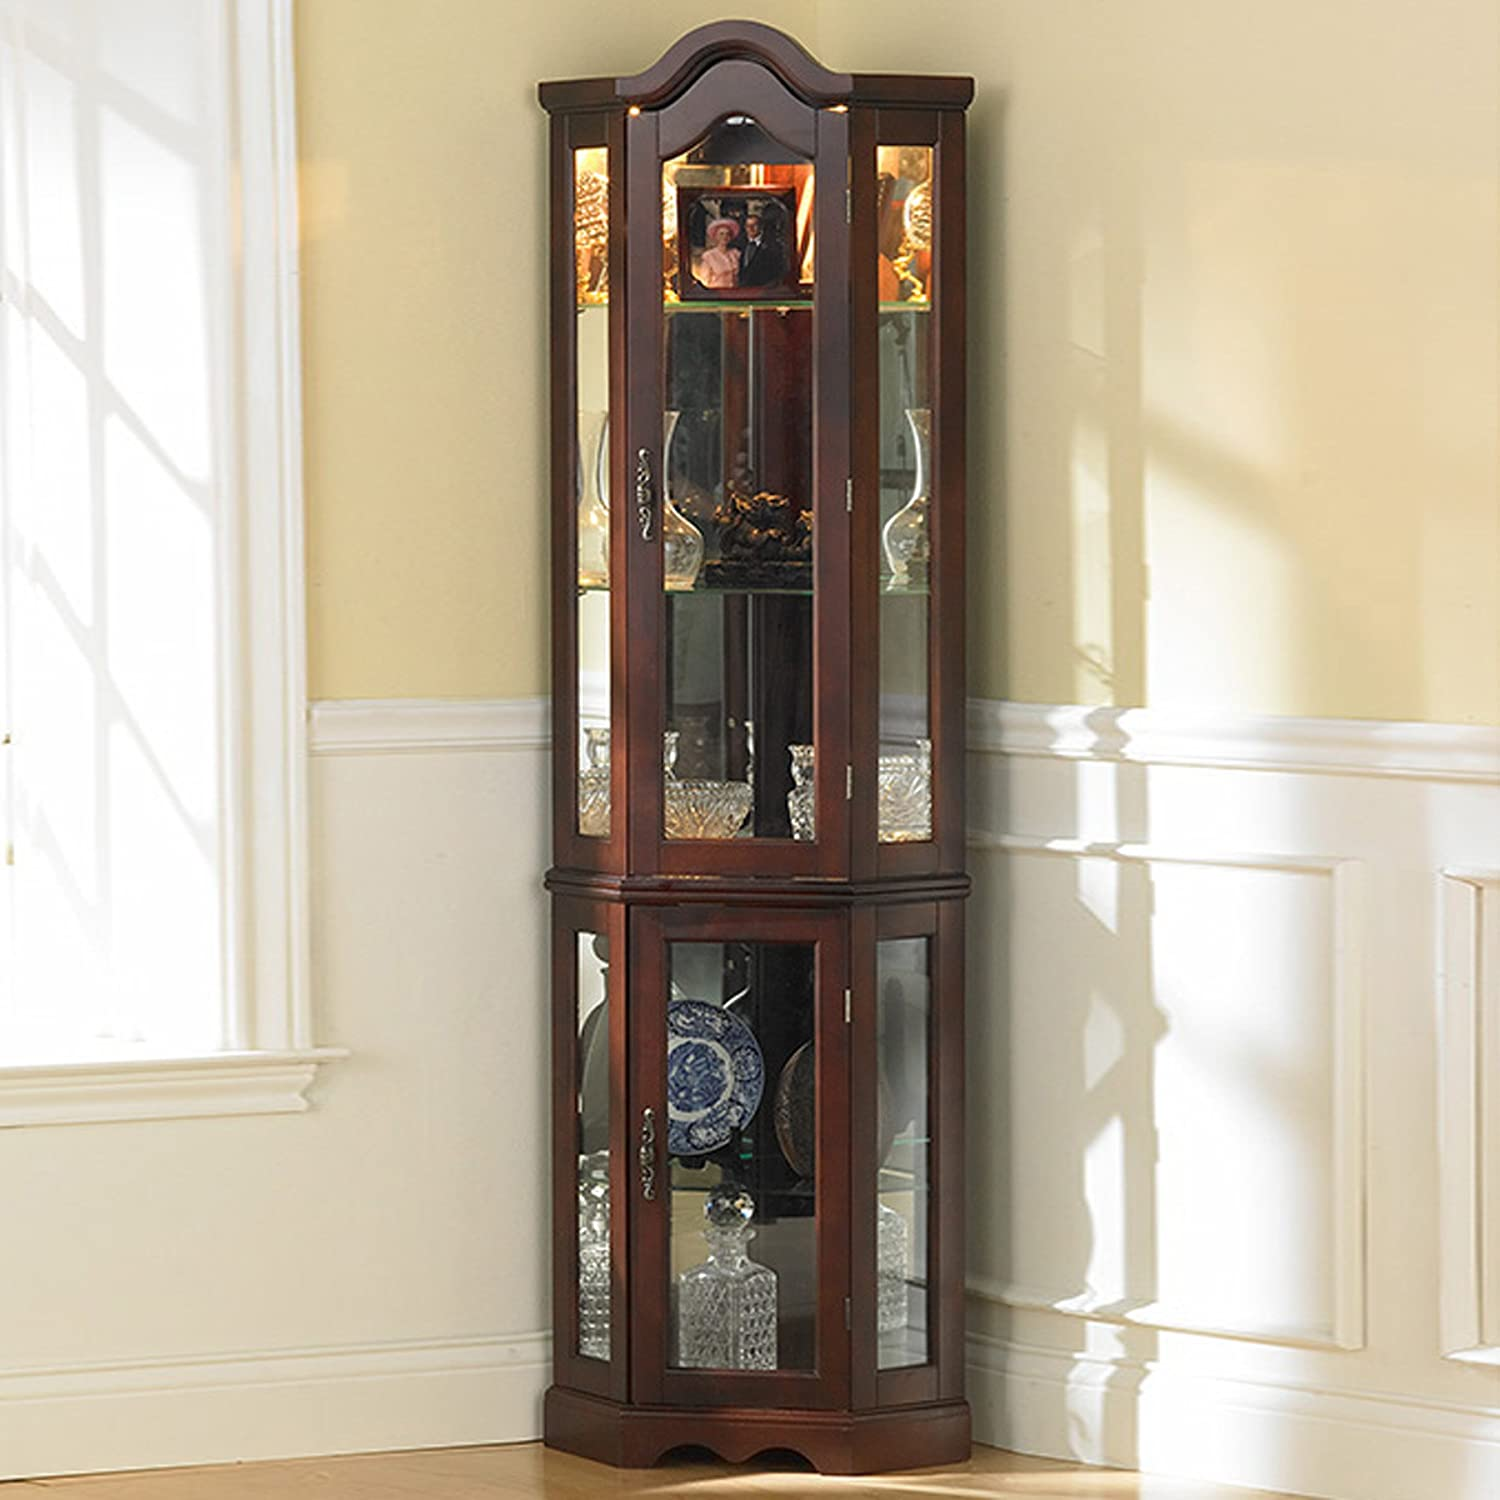 cabinet corner curio wood glass door shelf trophy furniture lighted display new ebay. Black Bedroom Furniture Sets. Home Design Ideas